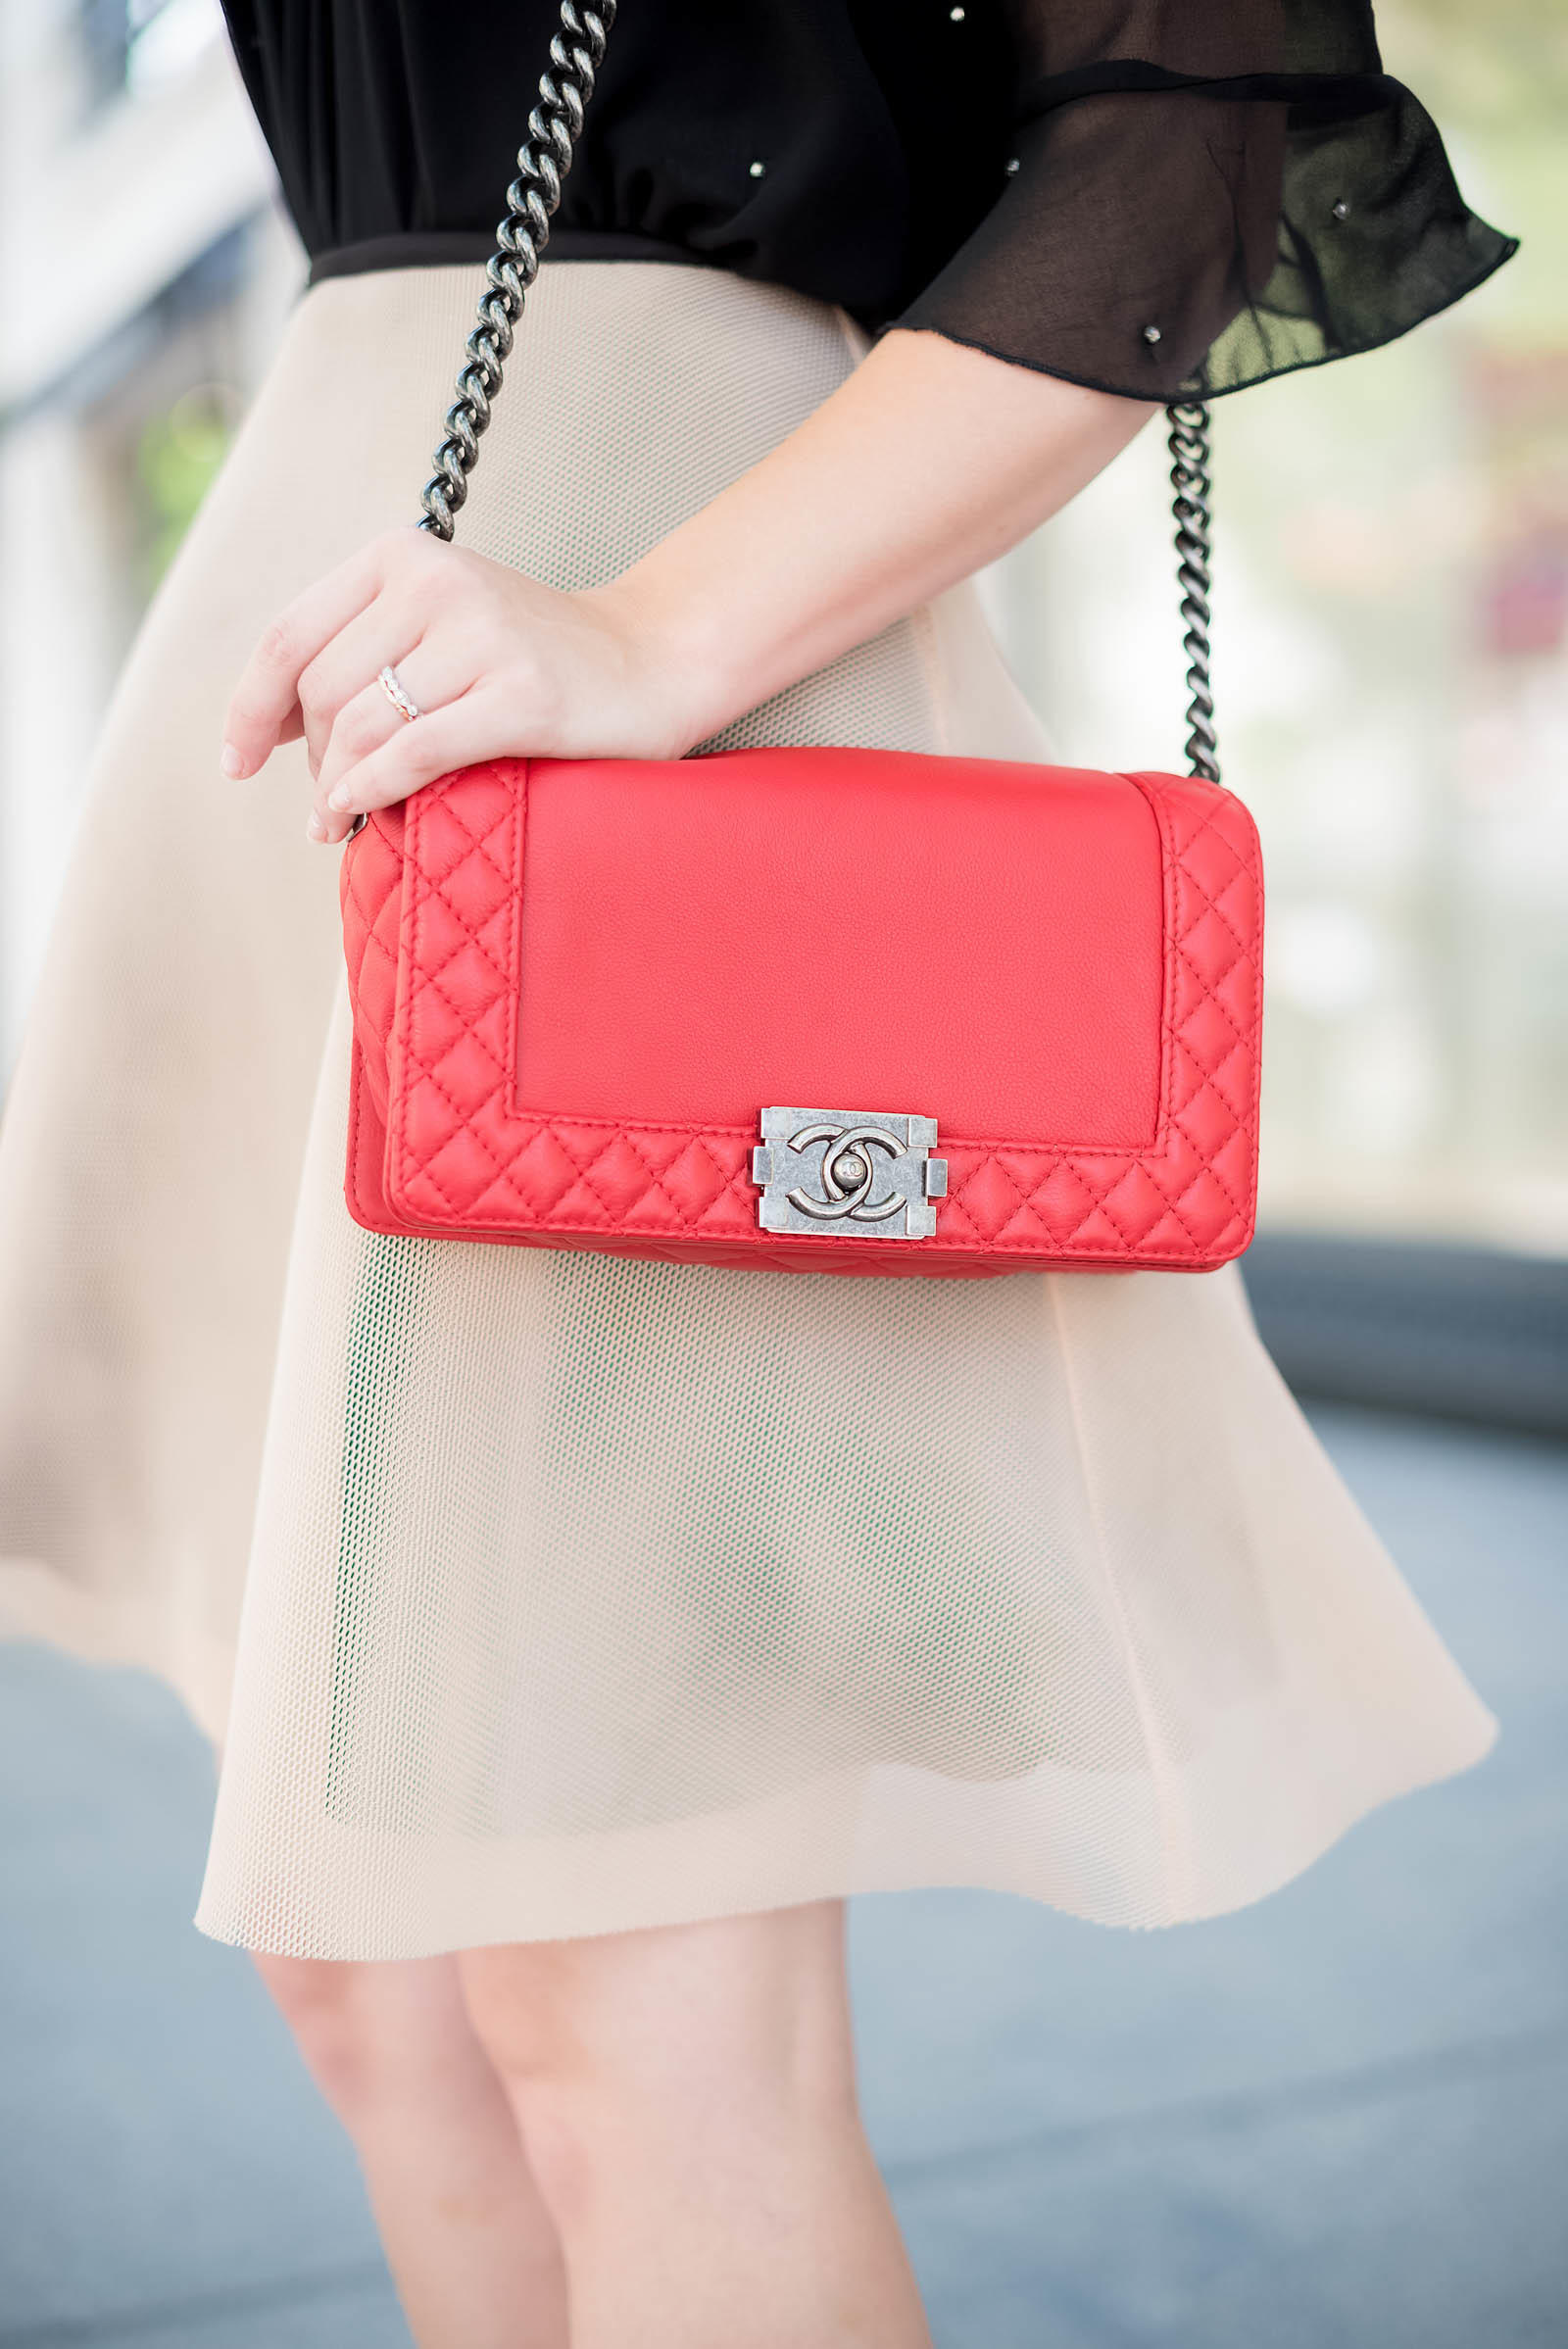 Chanel Red Boy Bag Topshop Zara Red Lips